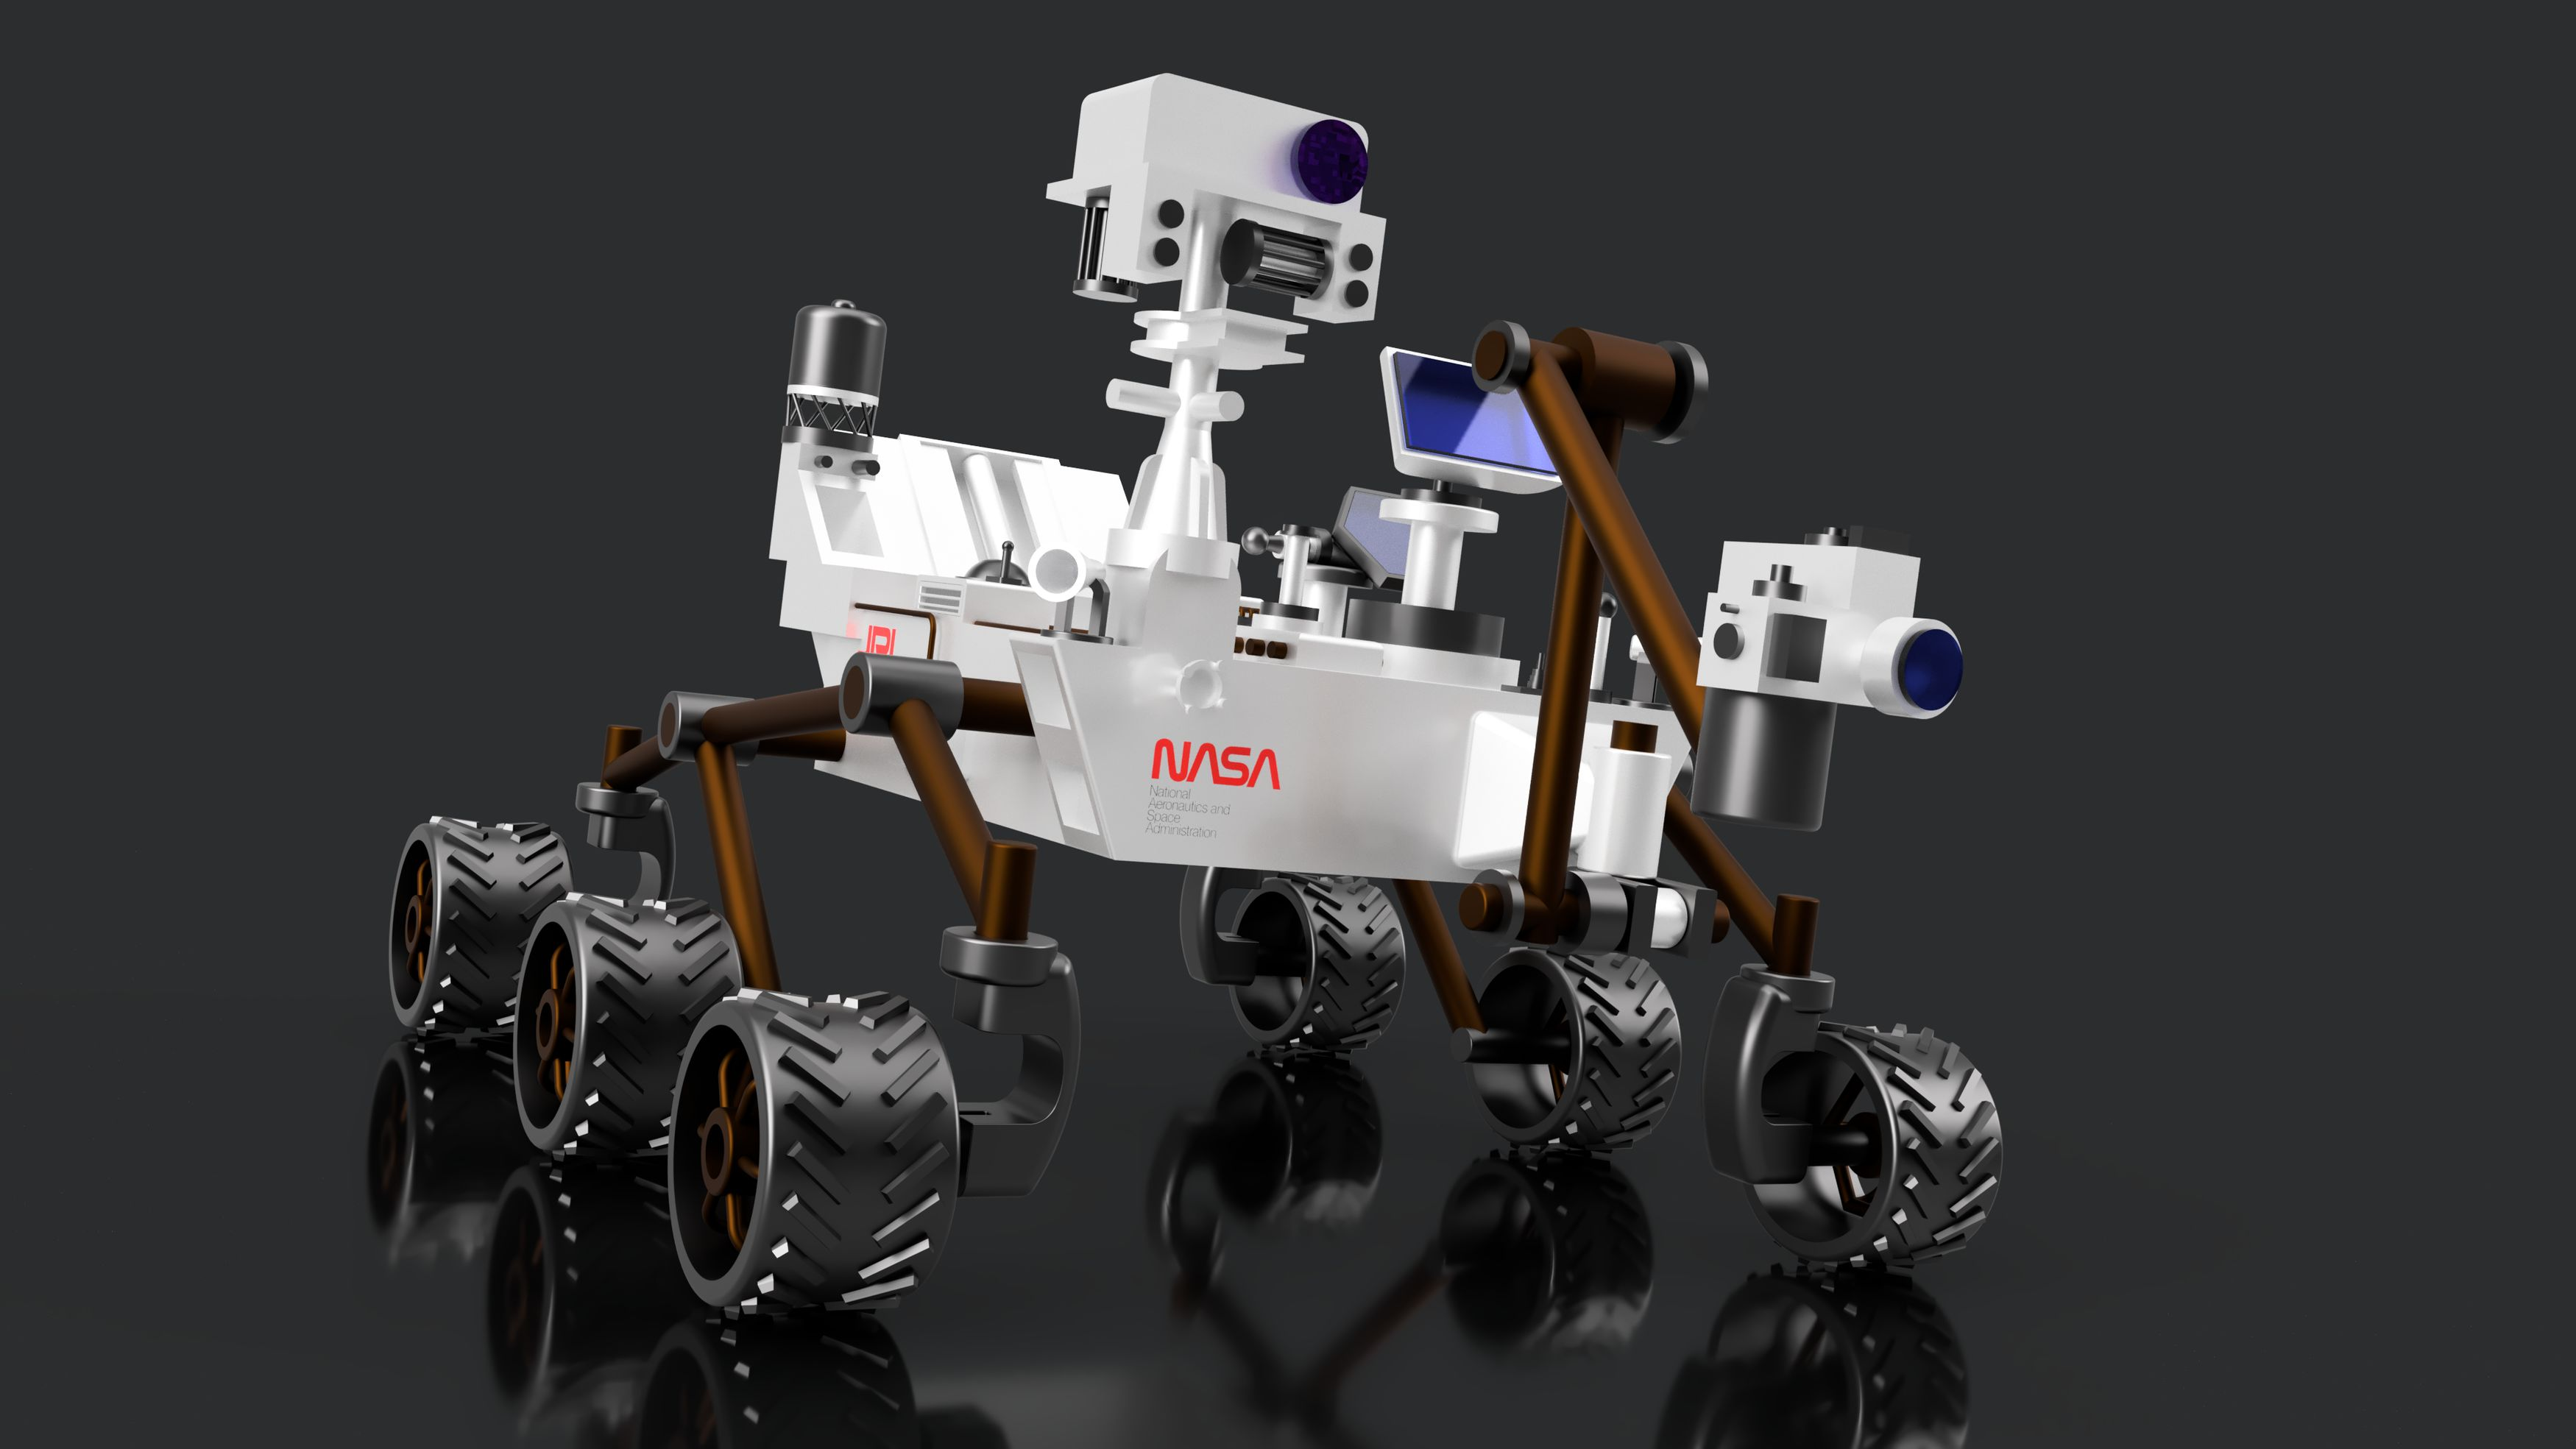 Robot-space-nasa---lcs2020-2020-may-06-10-00-55pm-000-customizedview11911004498lcc2020lccc-png-3500-3500